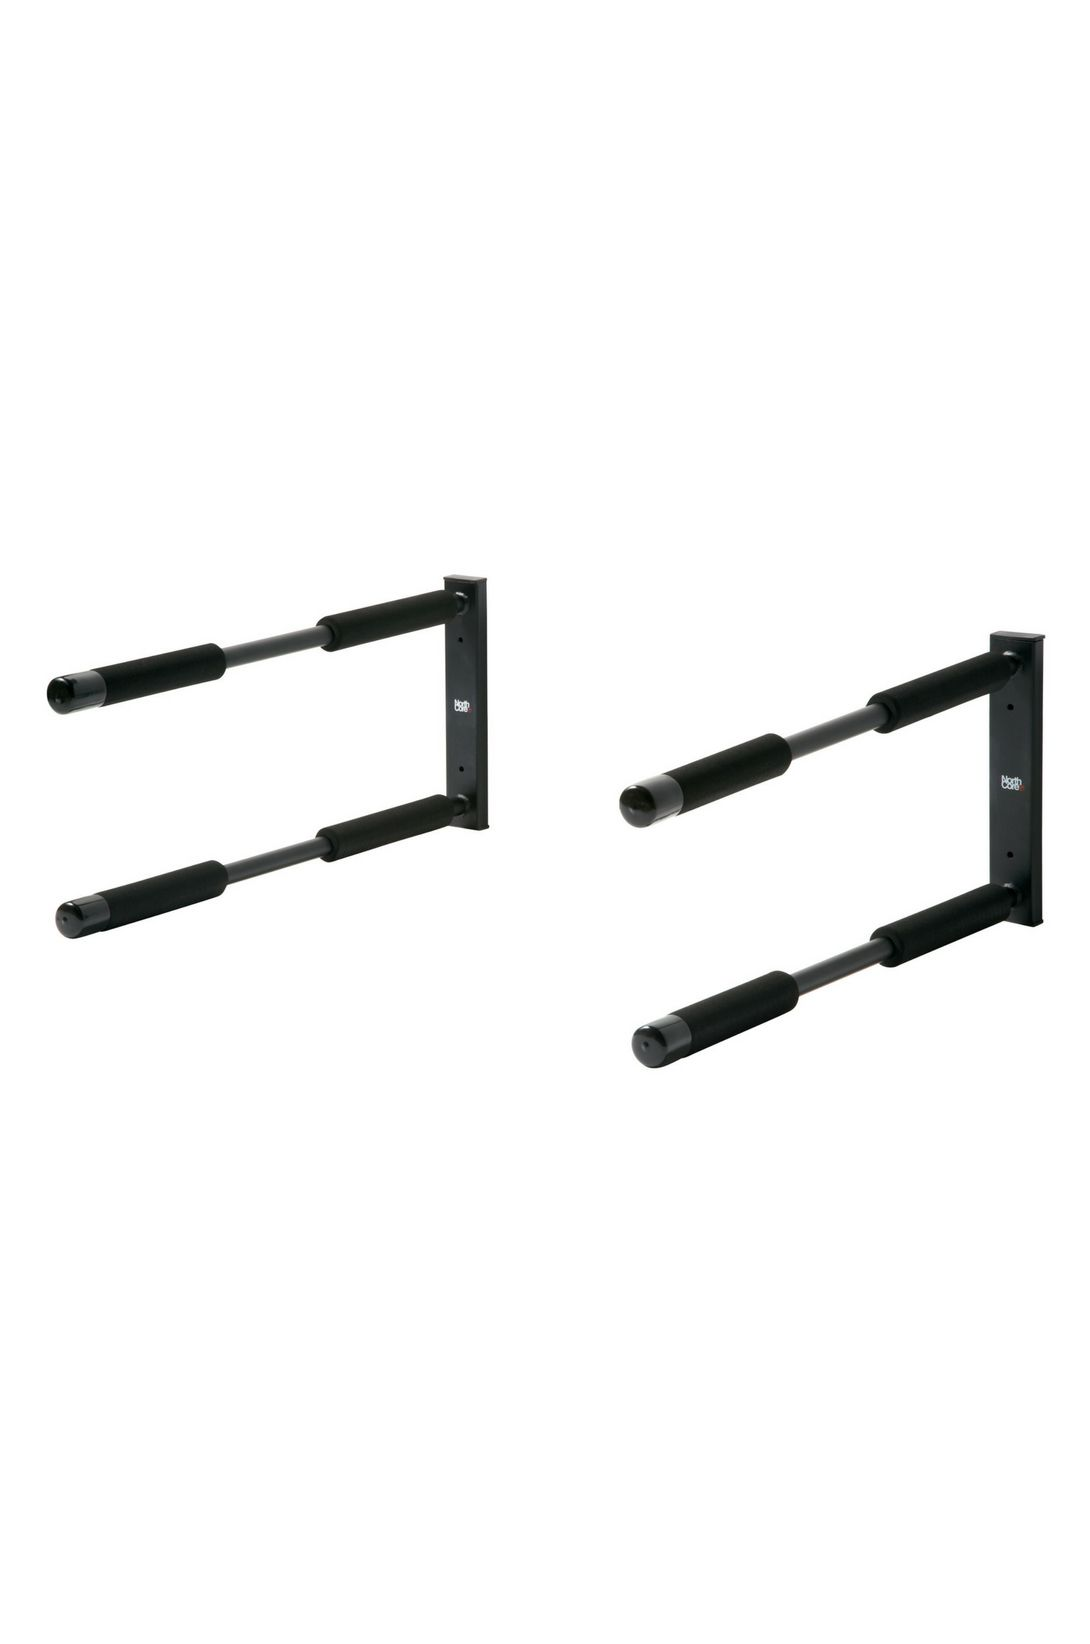 Rack Northcore DOUBLE SURFBOARD RACK Assorted